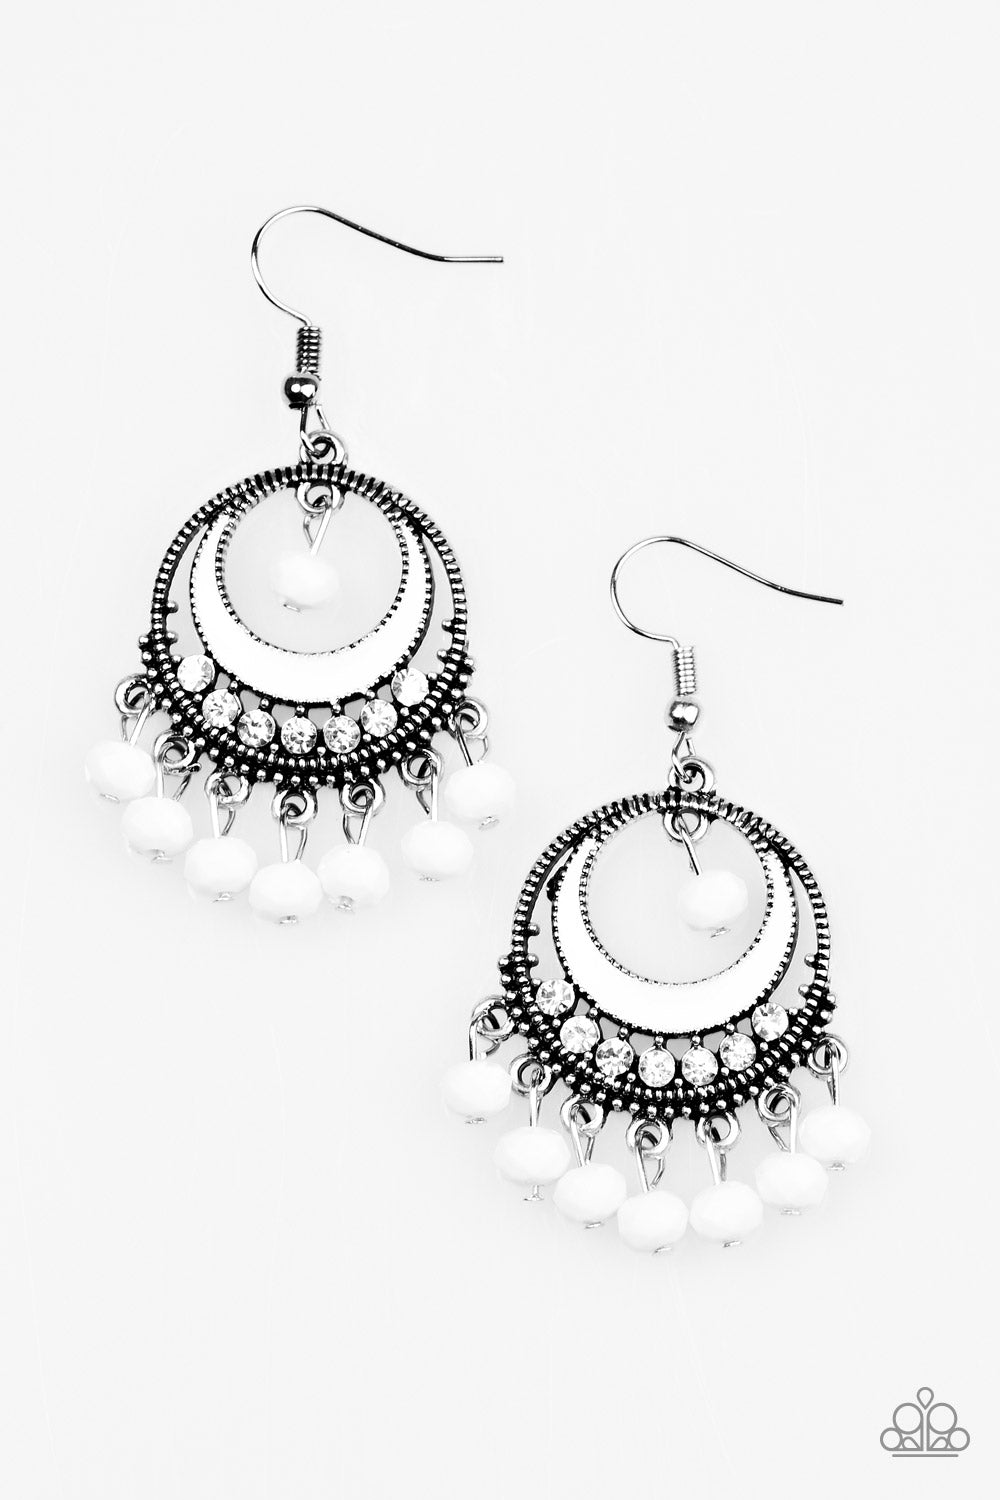 five-dollar-jewelry-meet-me-at-midnight-white-earrings-paparazzi-accessories